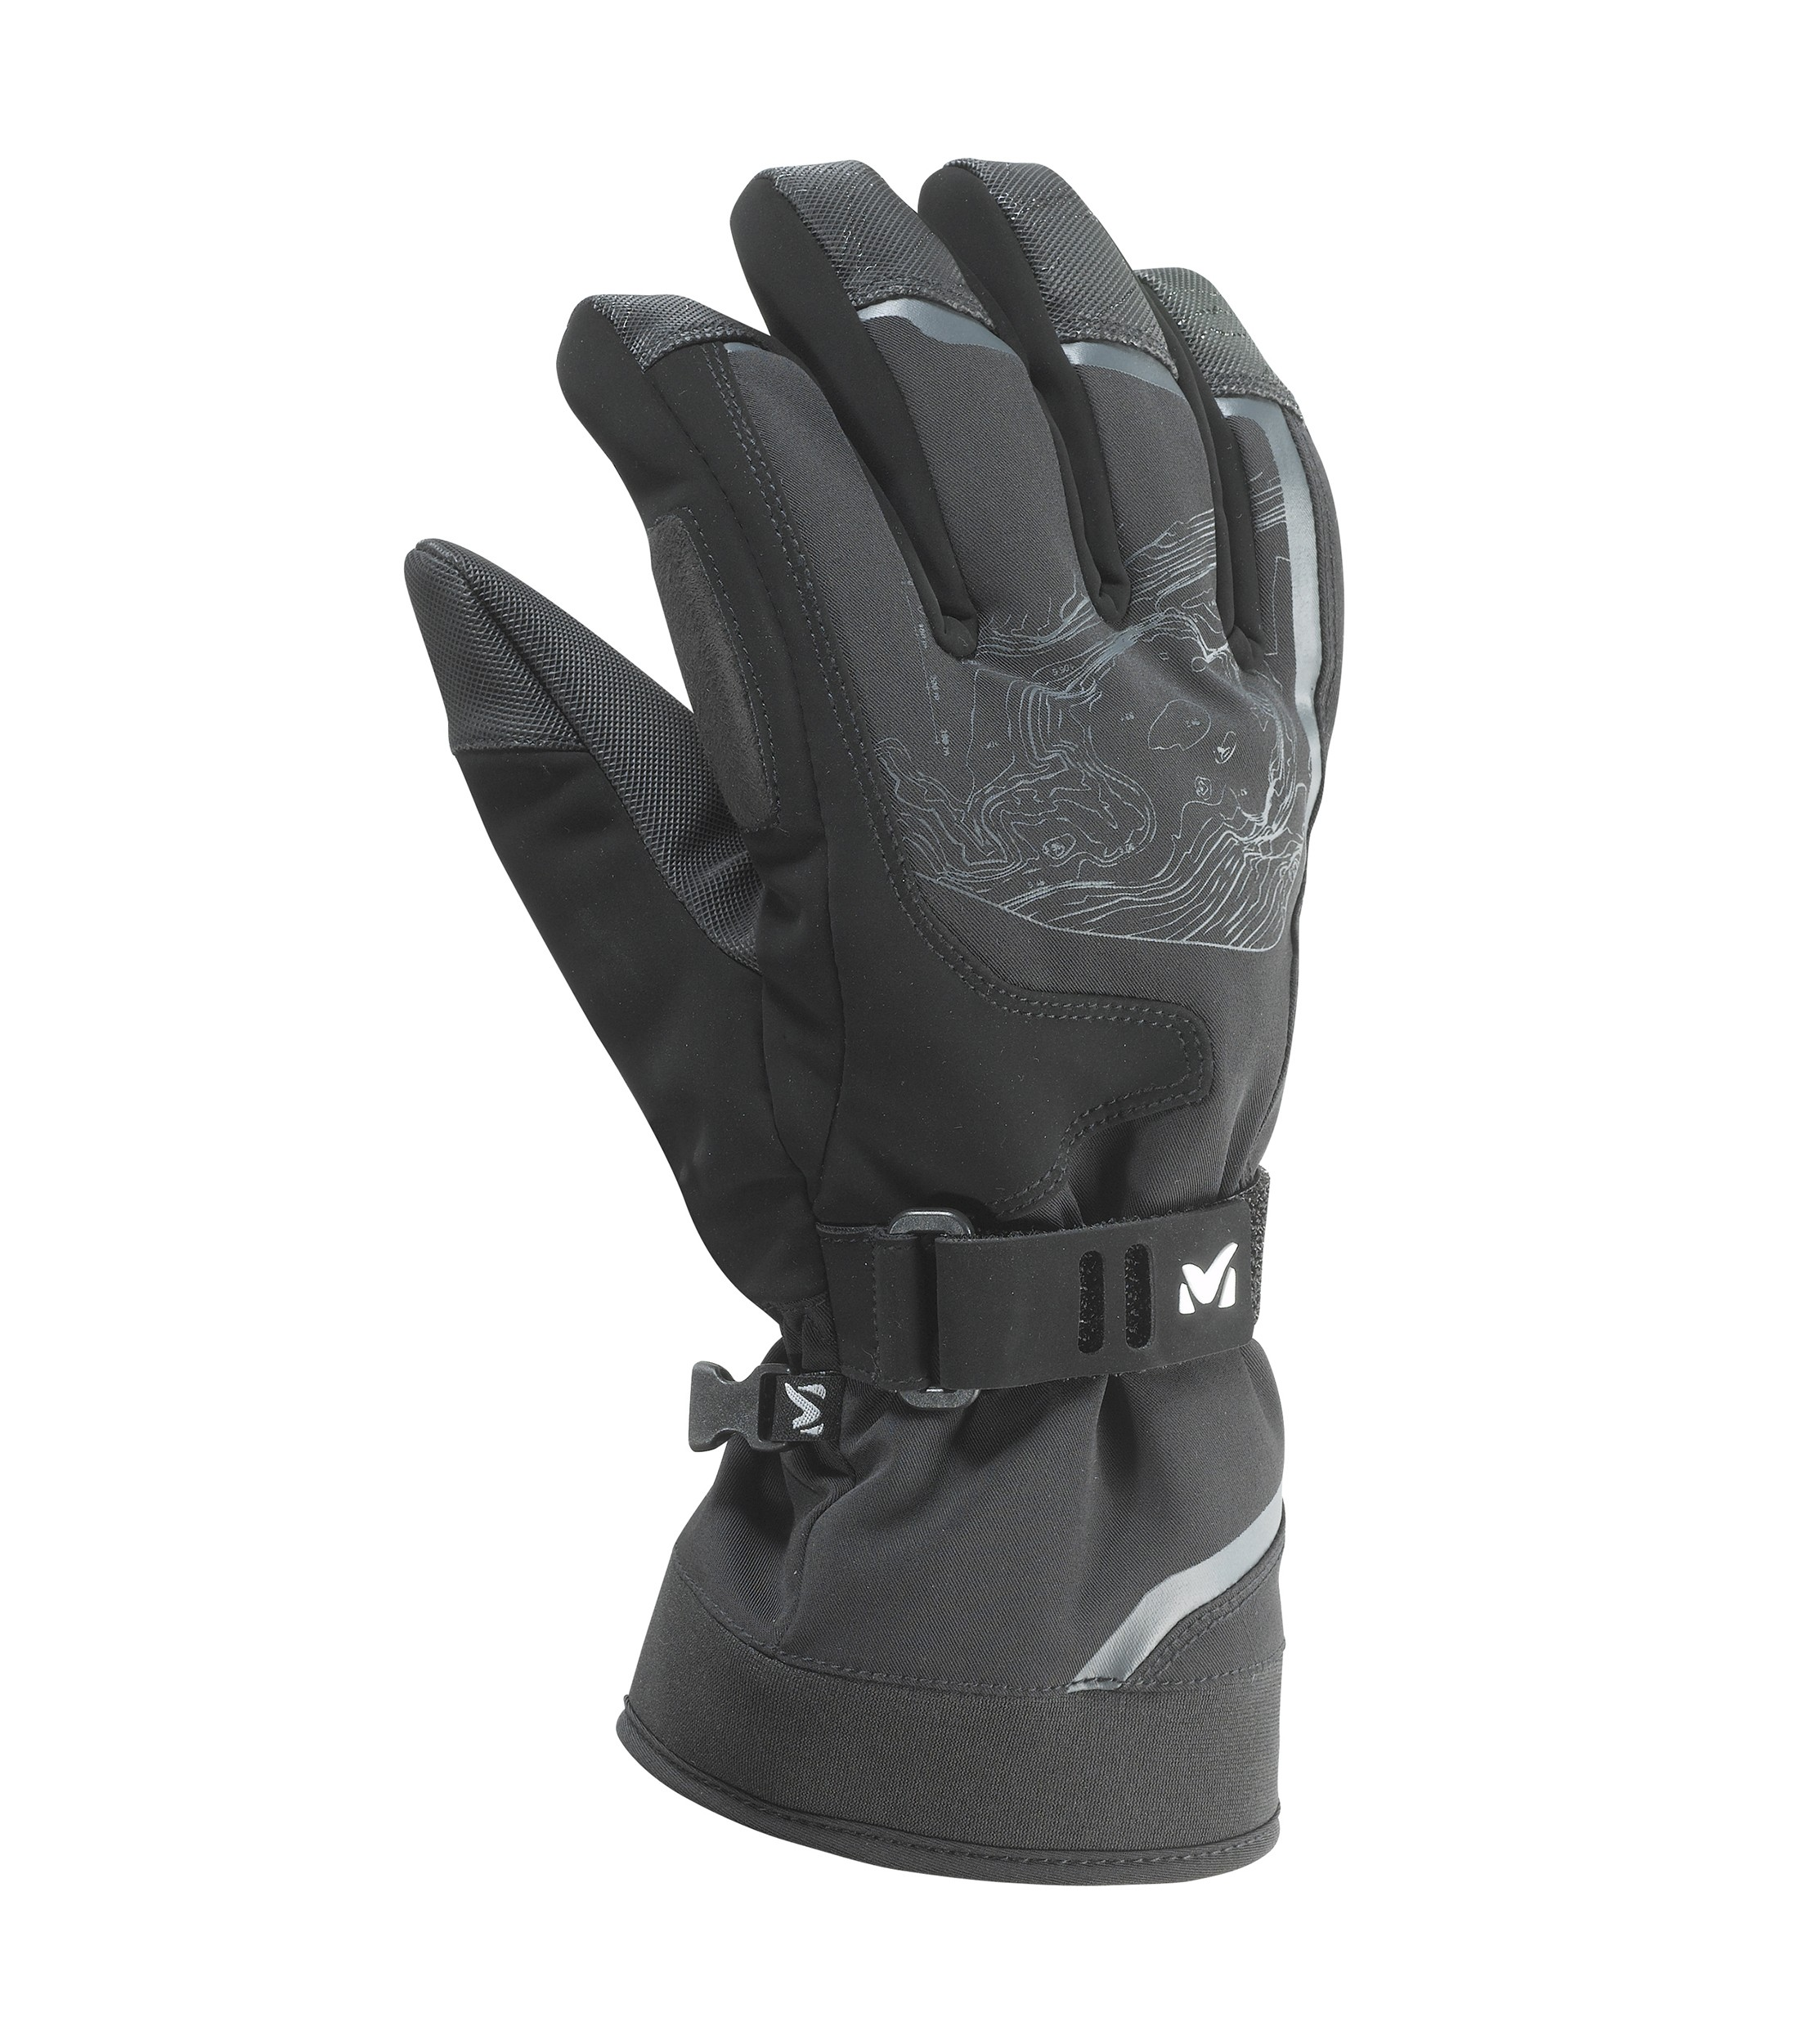 Gant de ski AMBER DRYEDGE GLOVES MILLET